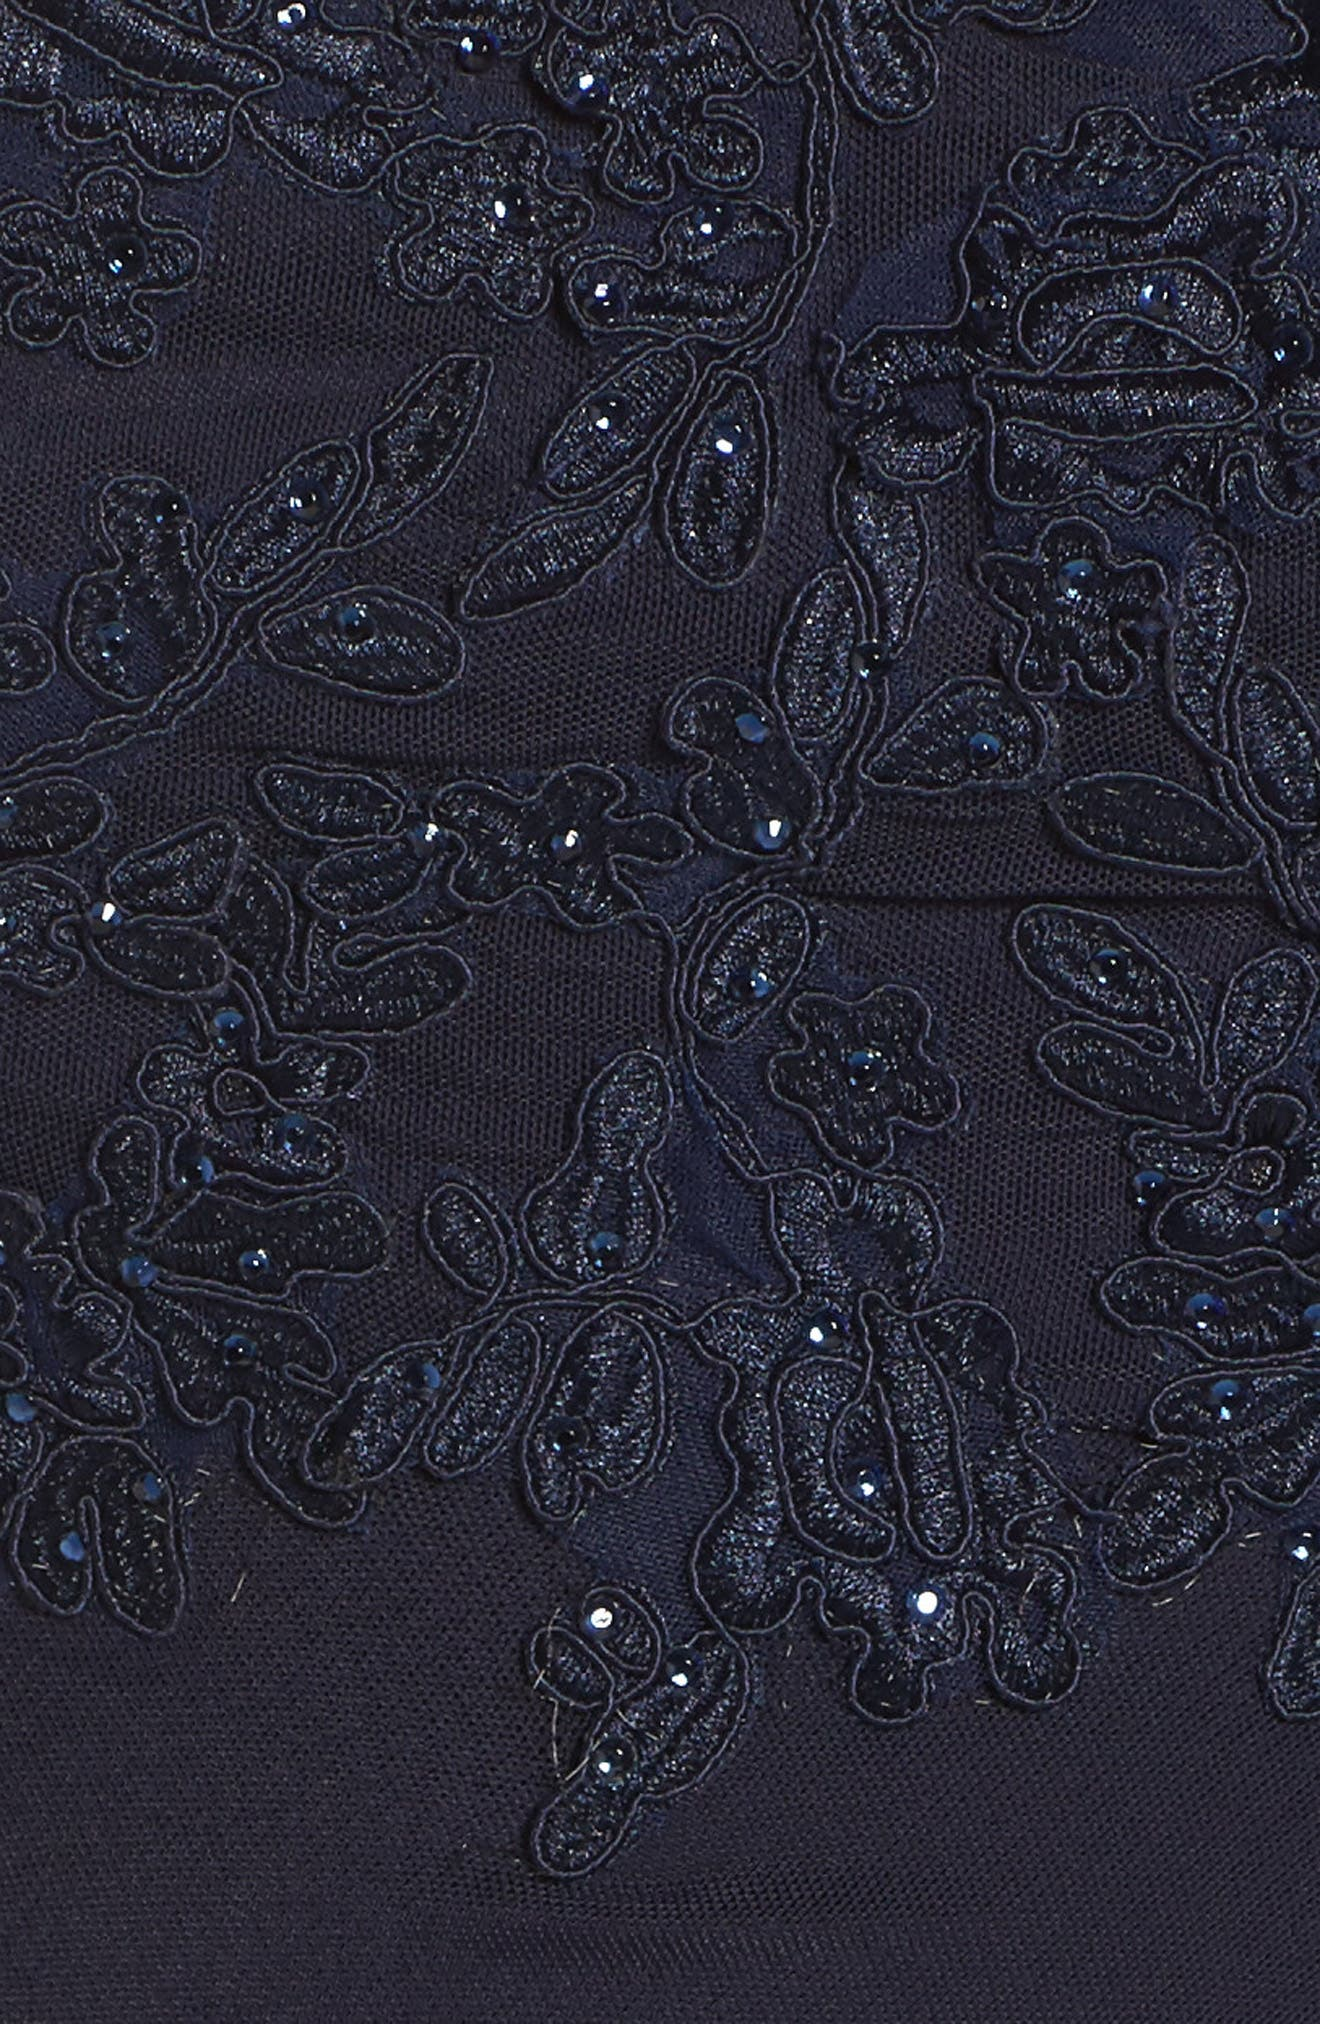 Sequin Embroidered A-Line Gown,                             Alternate thumbnail 5, color,                             Navy